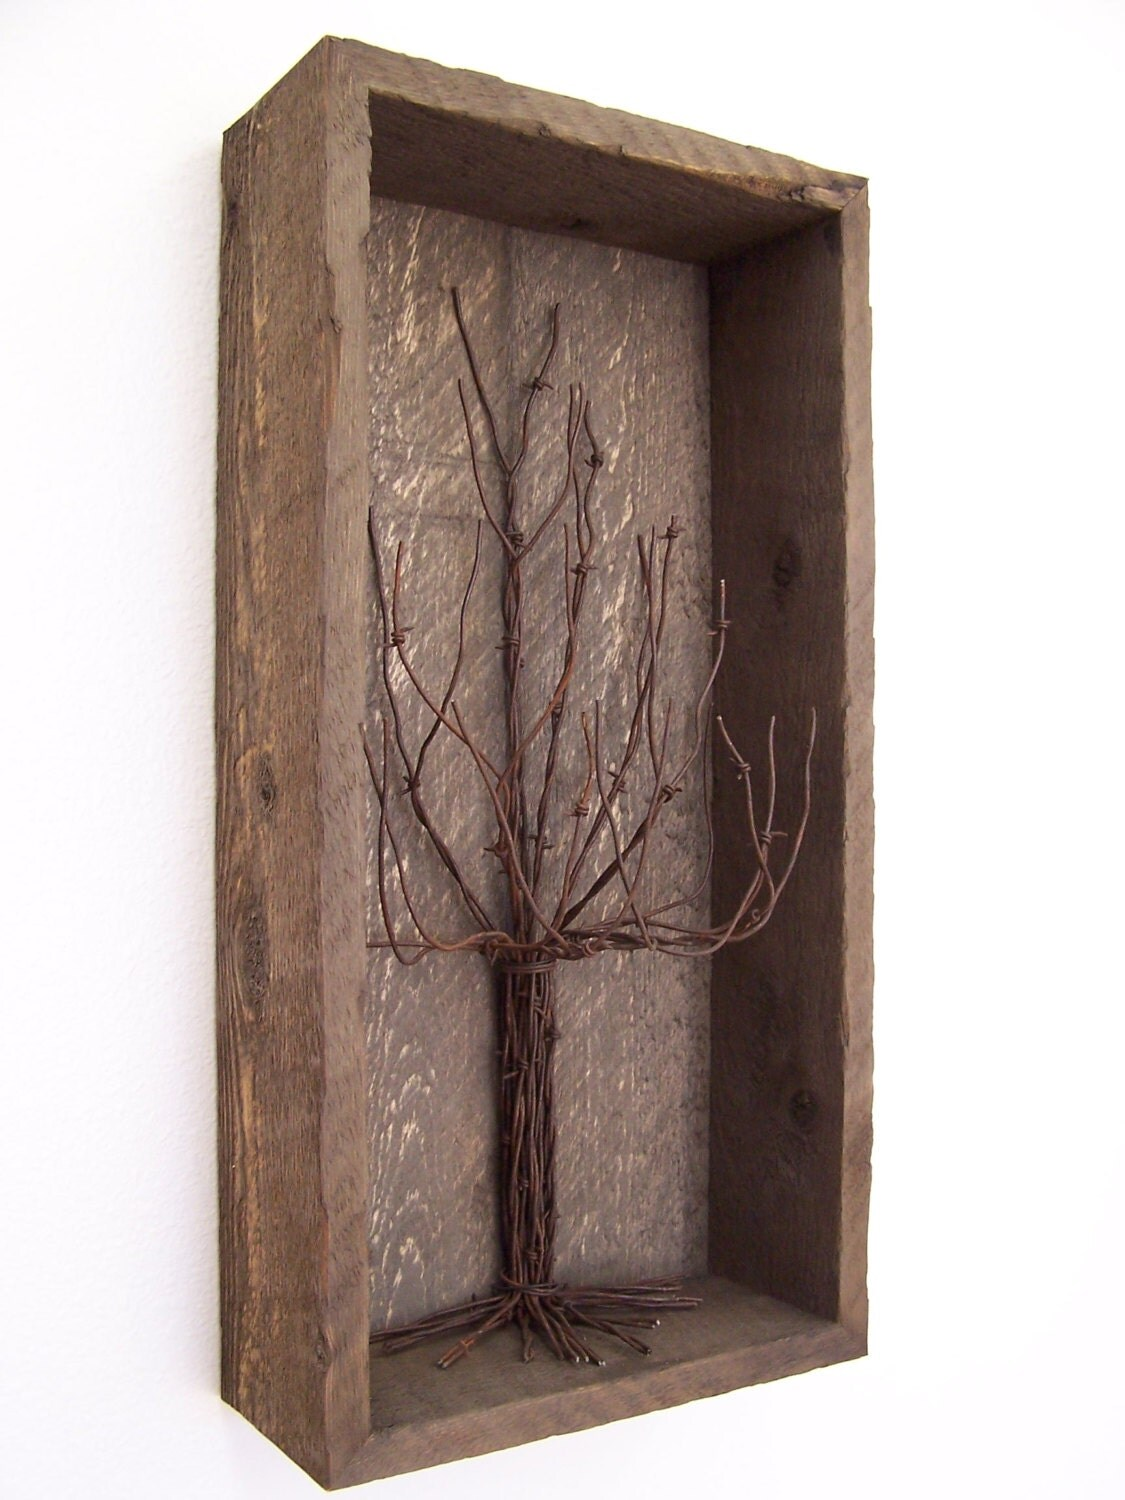 Barnwood rustic western shadowbox decor with barbwire tree for Barnwood decor